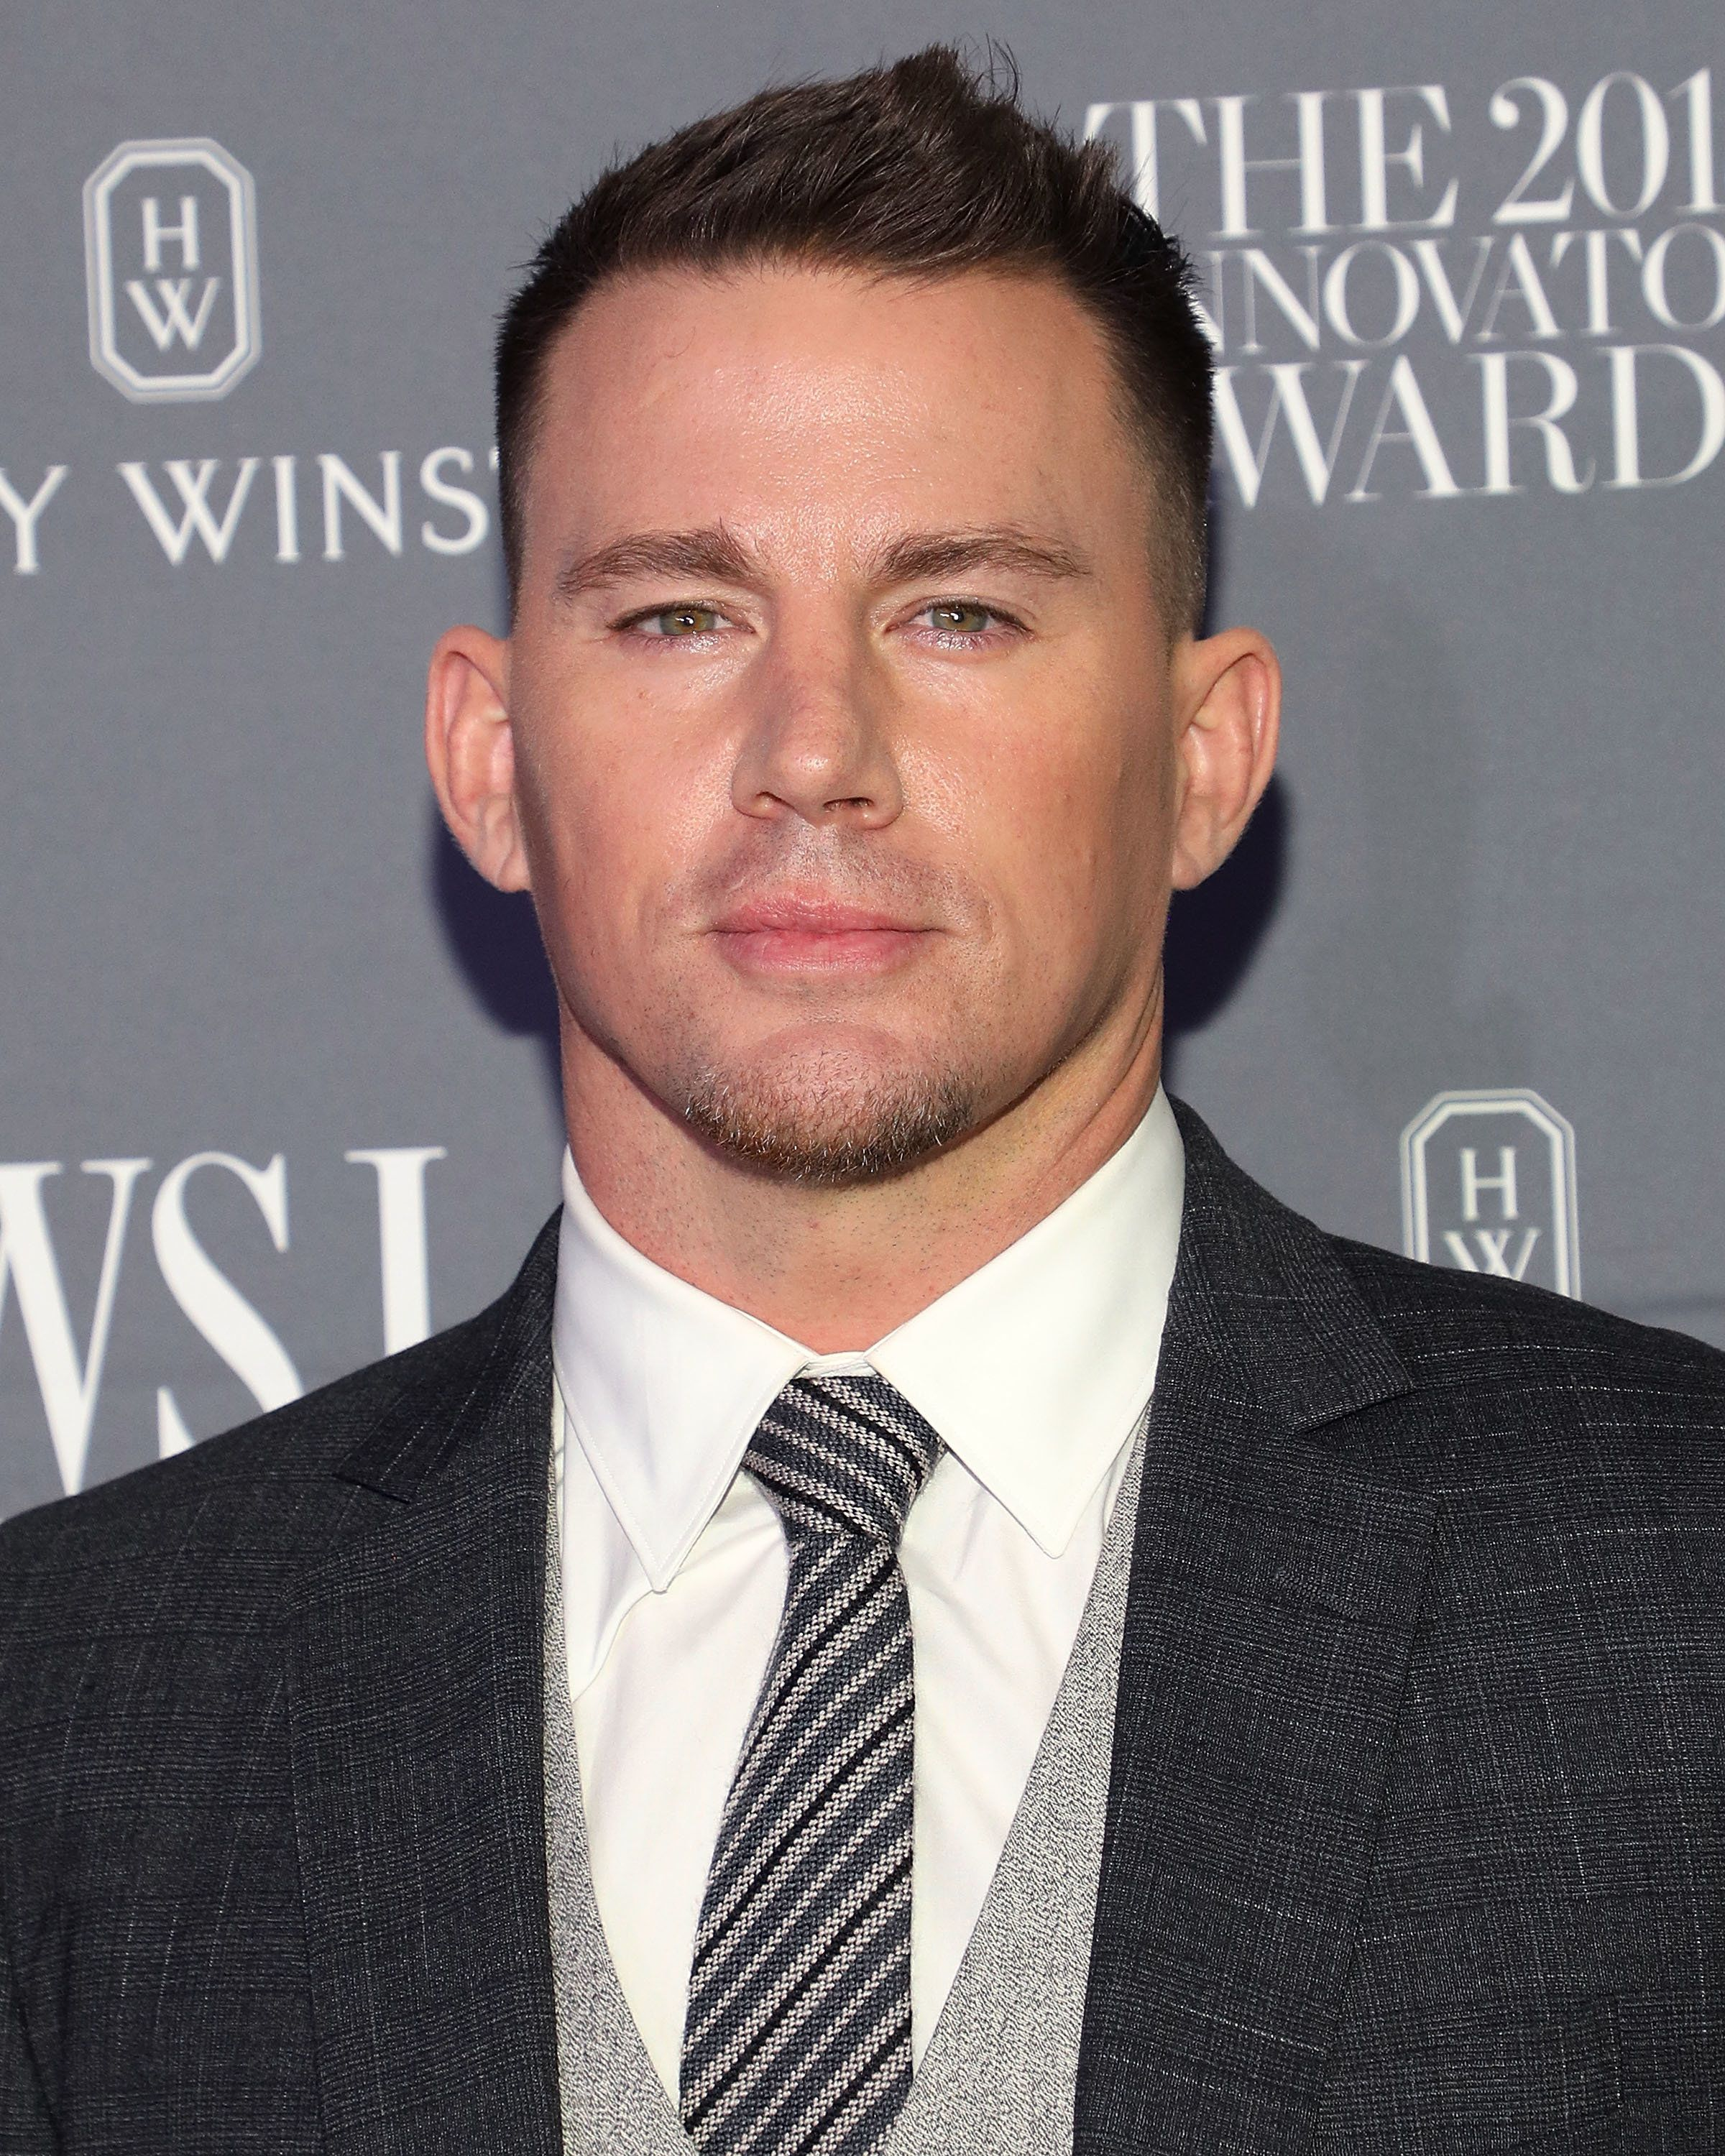 MAGIC MOVES: Channing Tatum Spotted Getting Right Into It At Jessie J's London